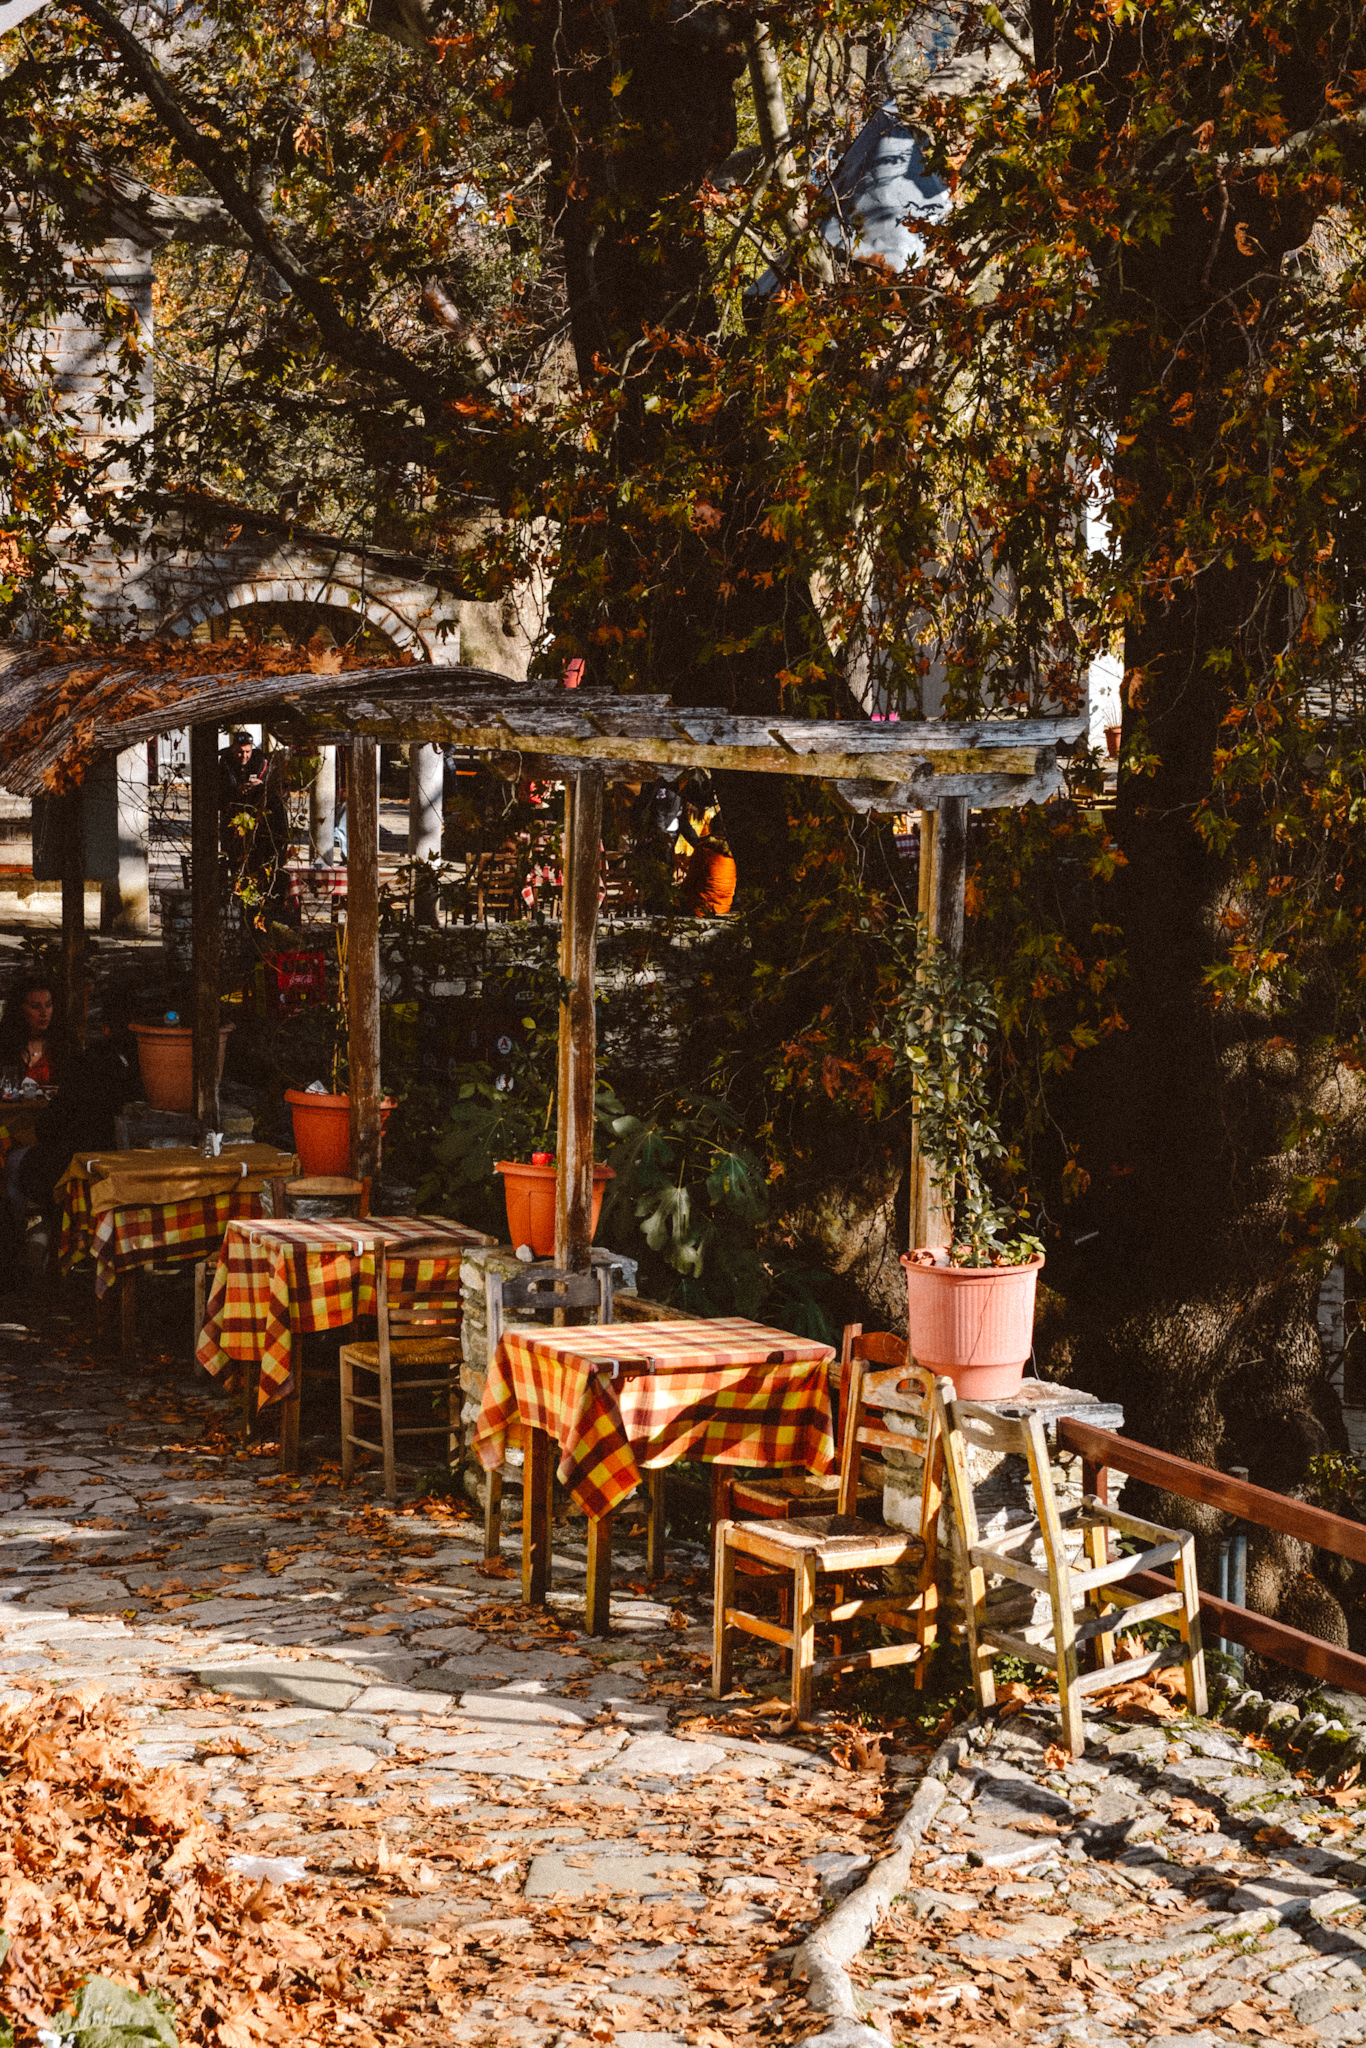 Travel guide to Pelion